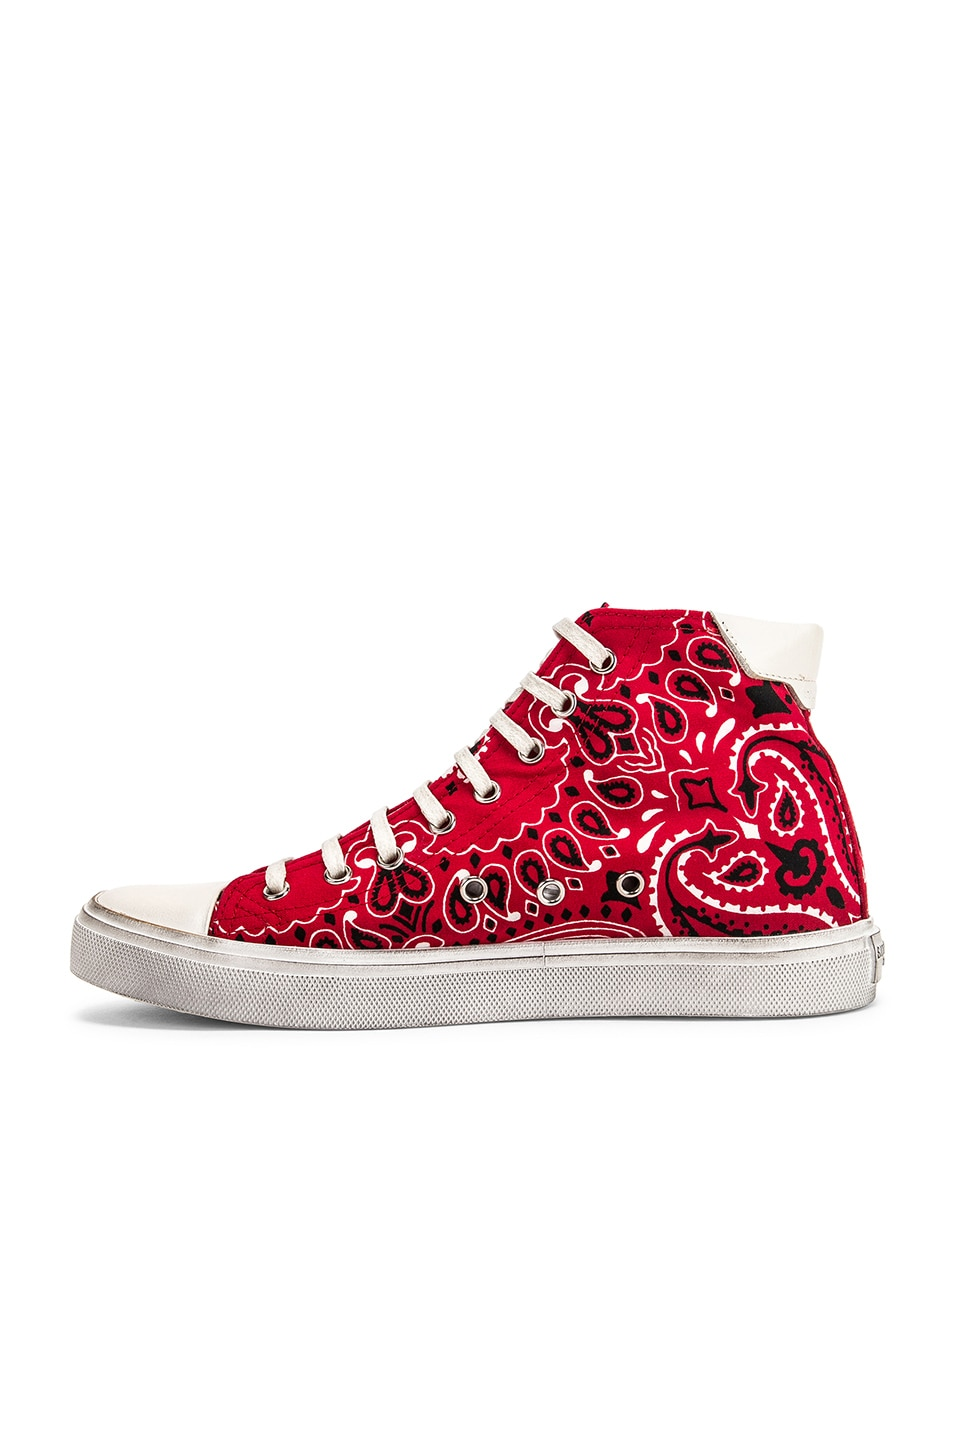 Image 5 of Saint Laurent High Top Bedford Sneakers in Red & White